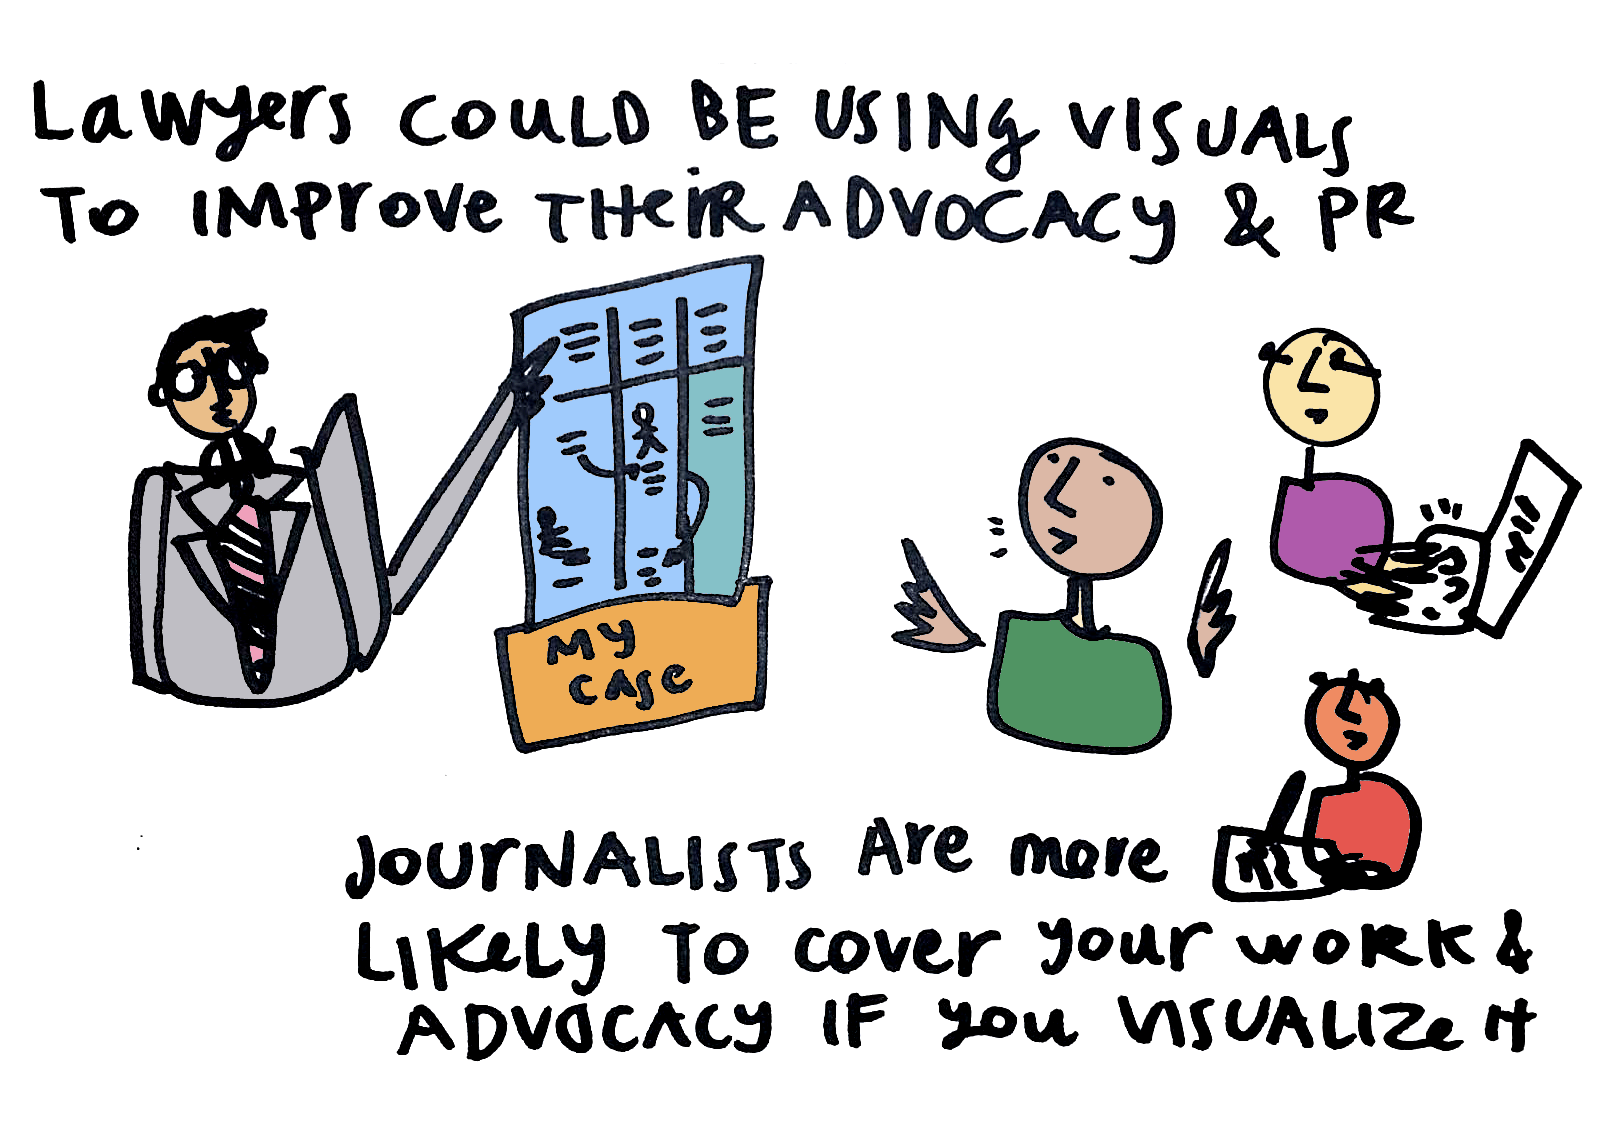 Visual Law Meetup takeaways - use visuals to increase advocacy and pr